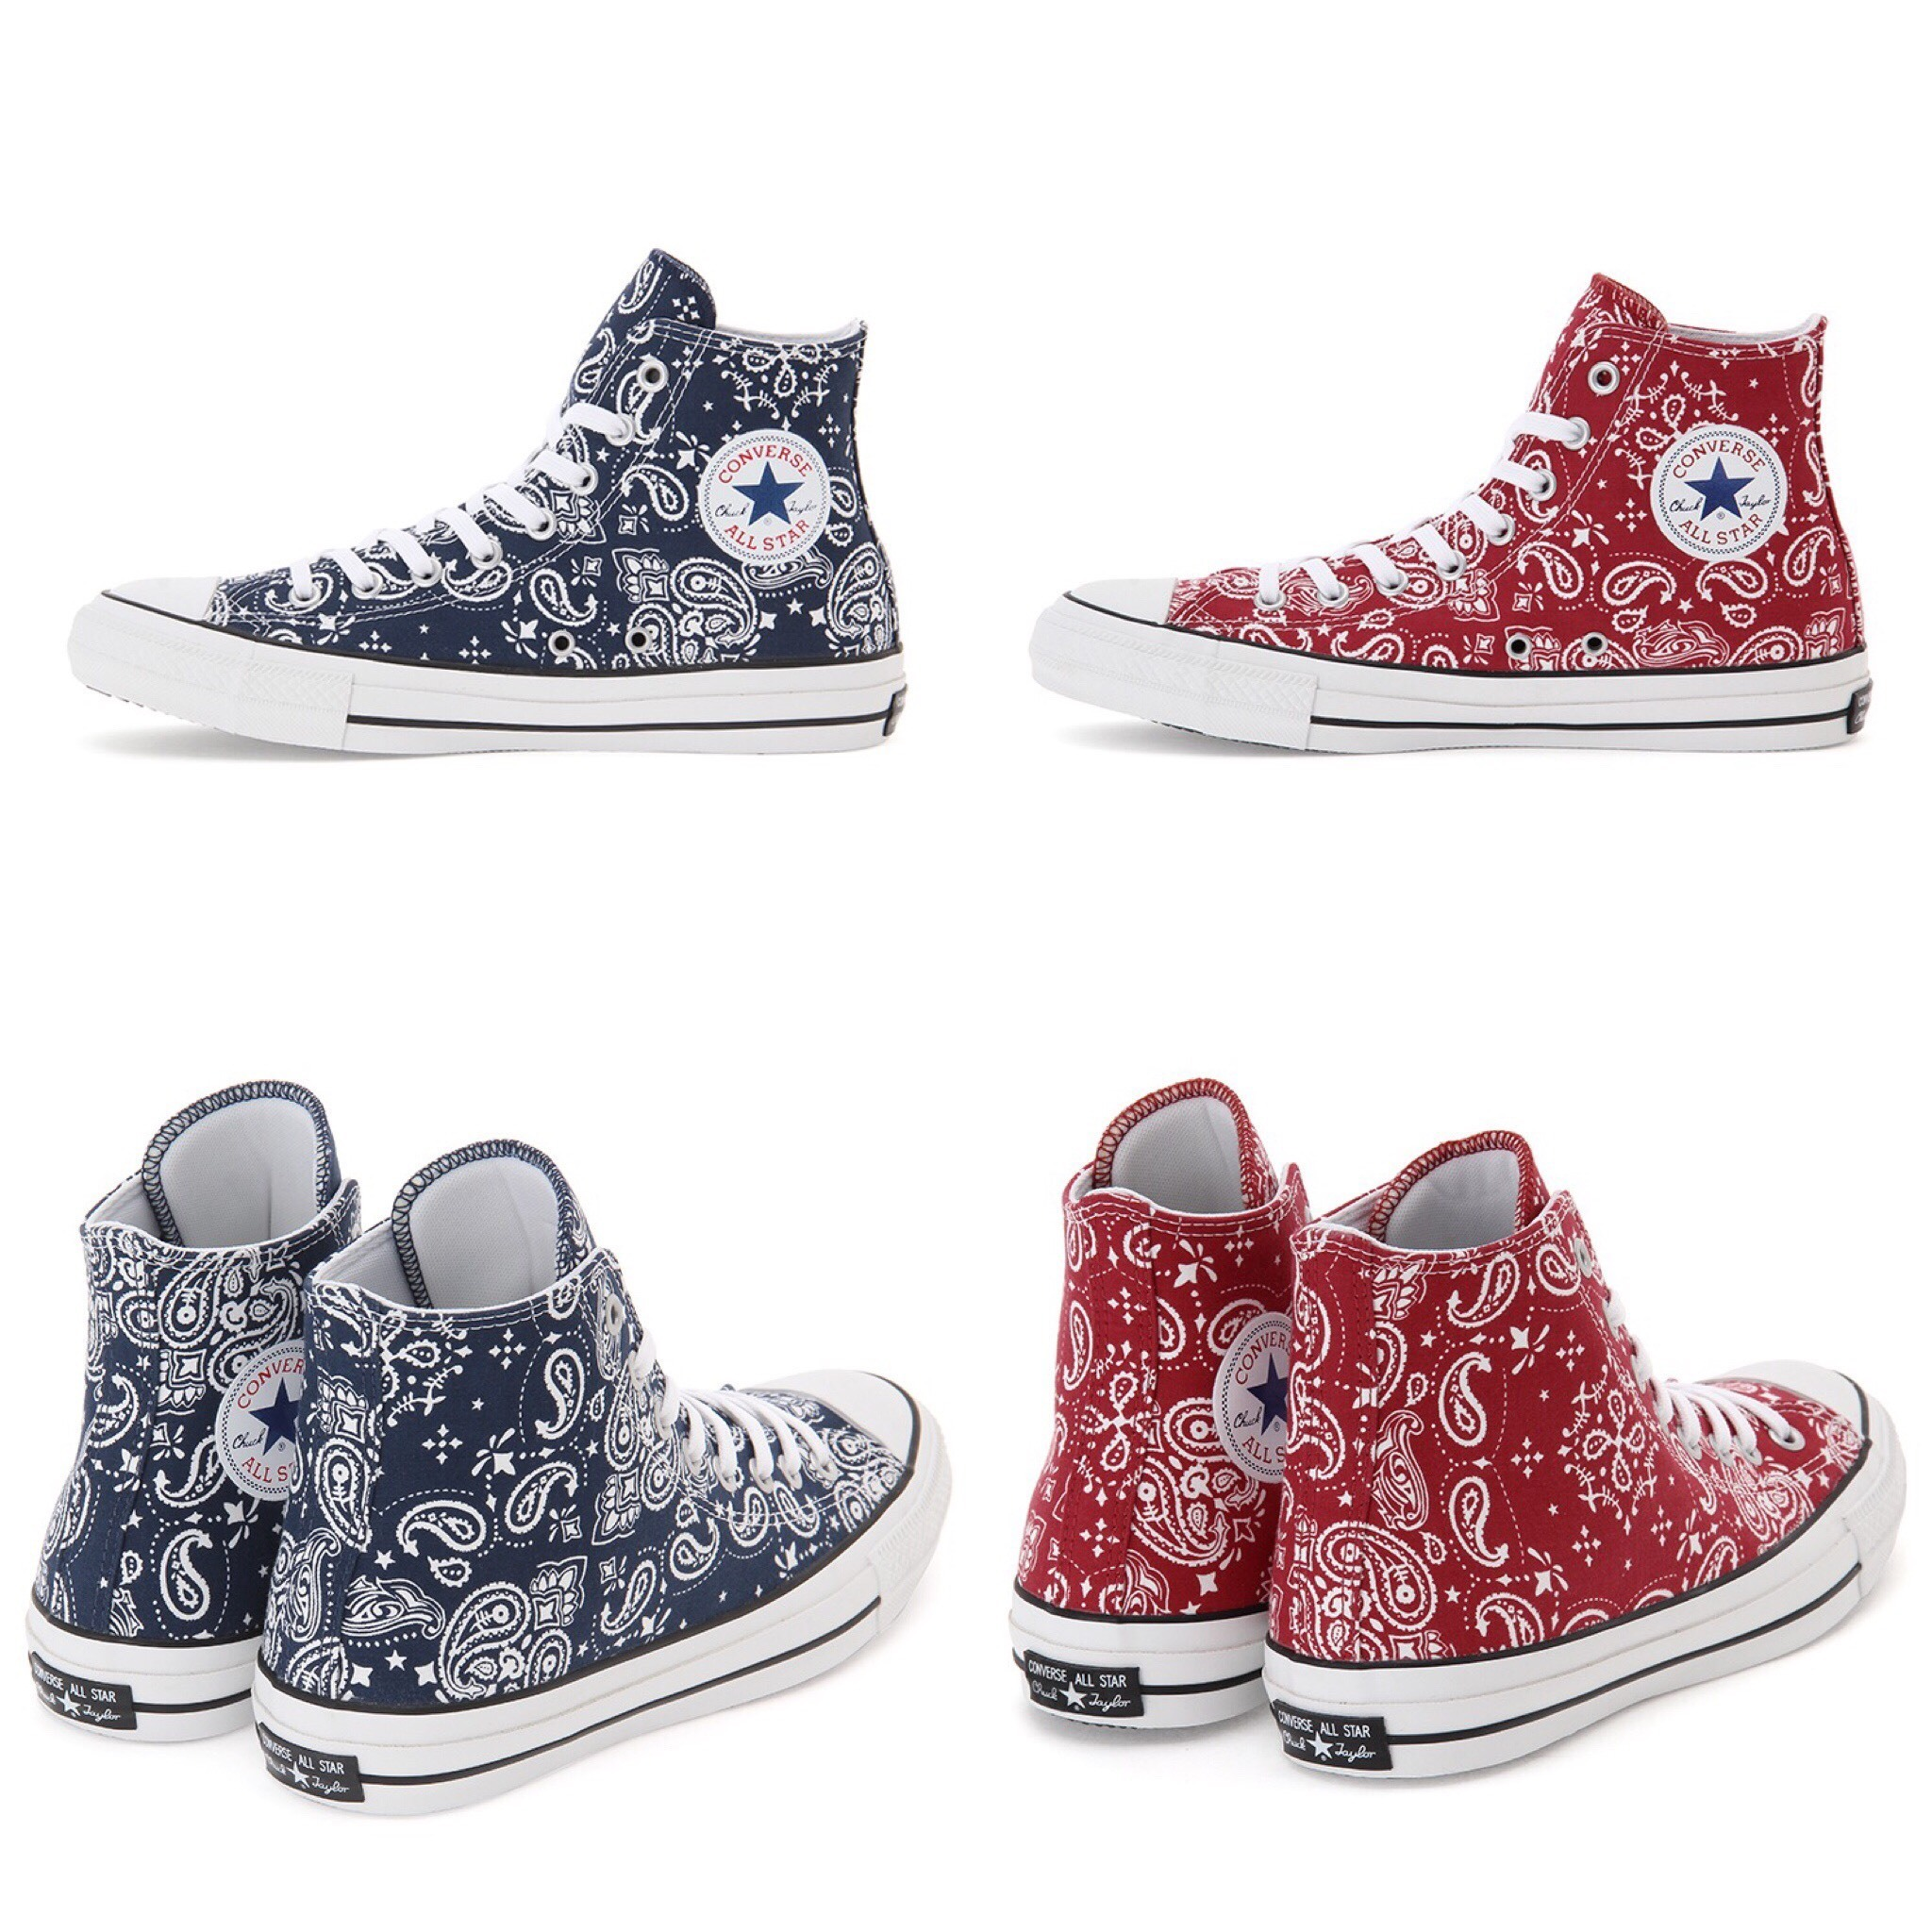 ☆送料無料☆CONVERSE ALL STAR 100 BANDANA HI バンダナ柄